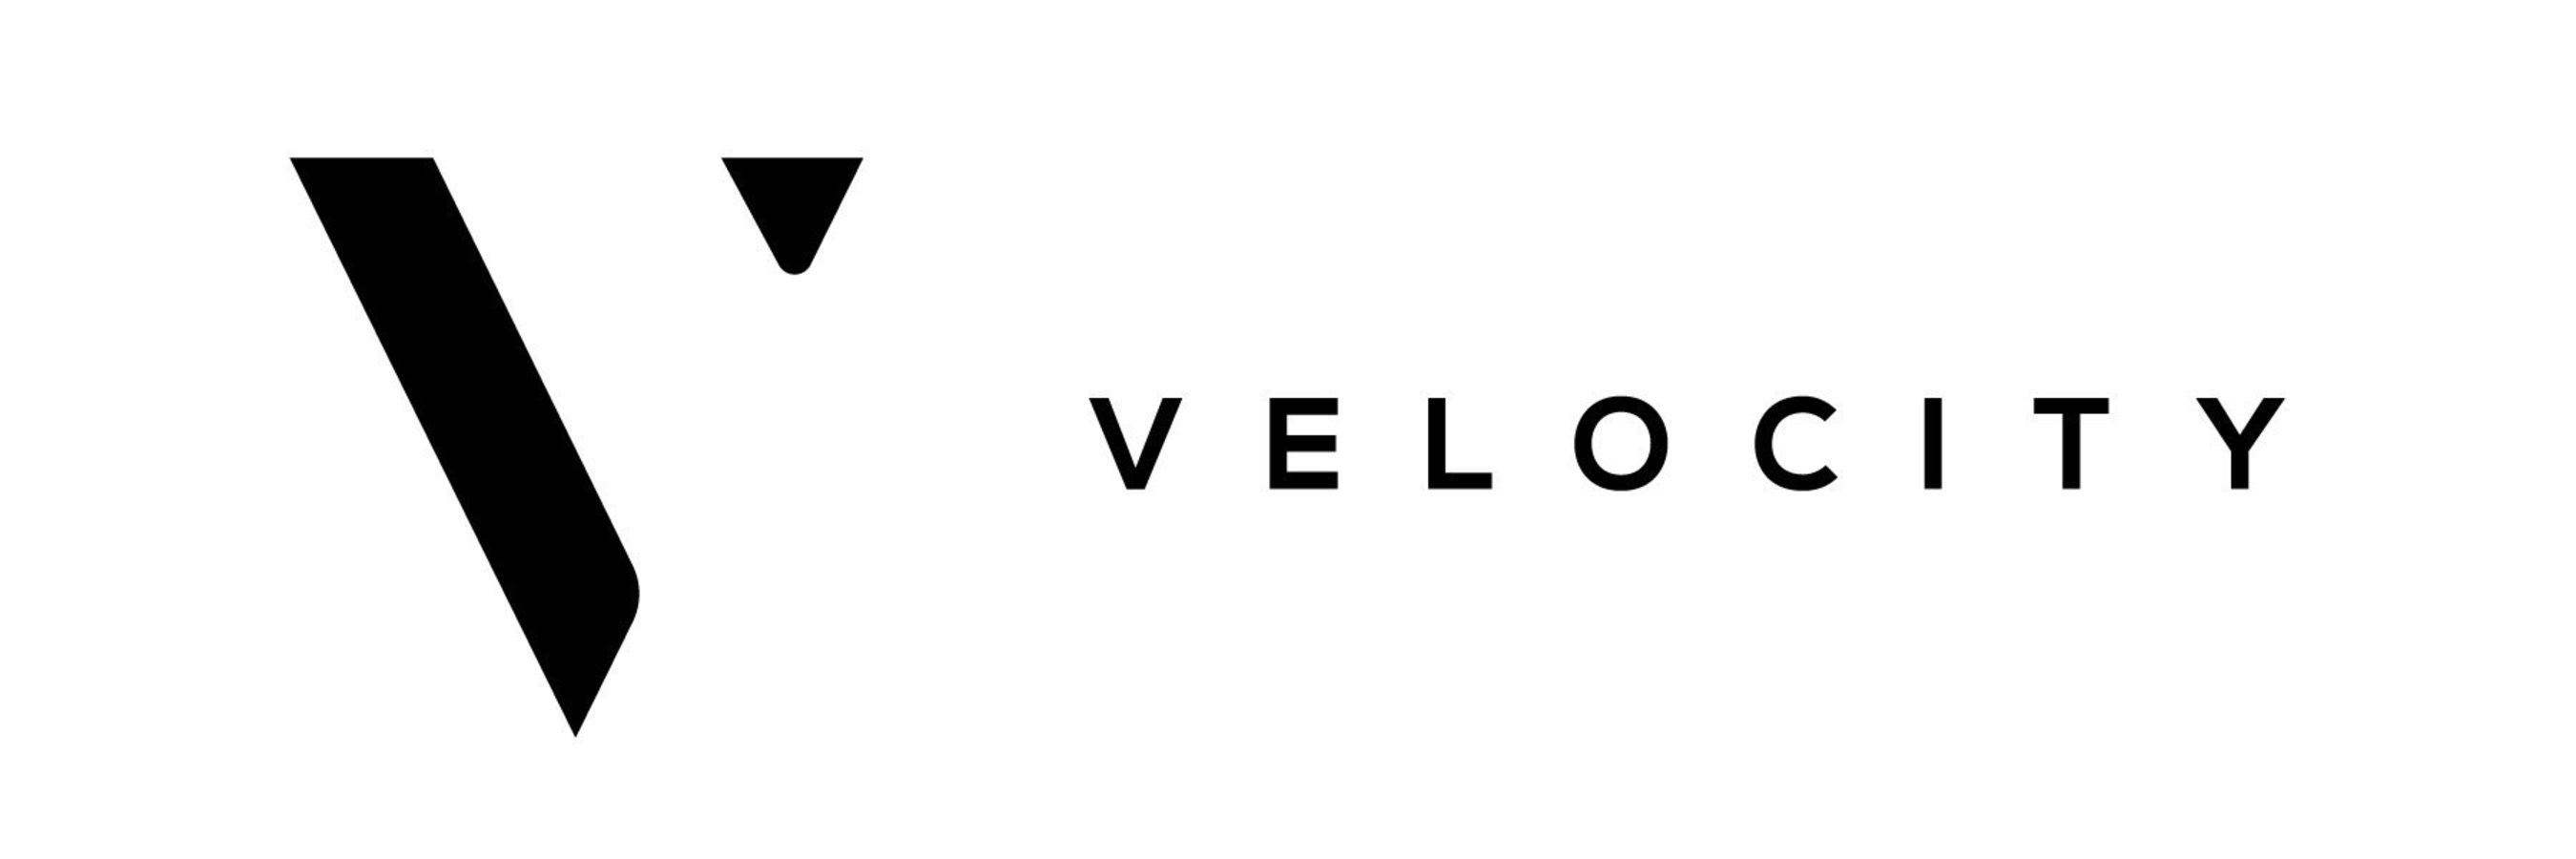 Velocity Secures $22.5 Million in Series B Funding